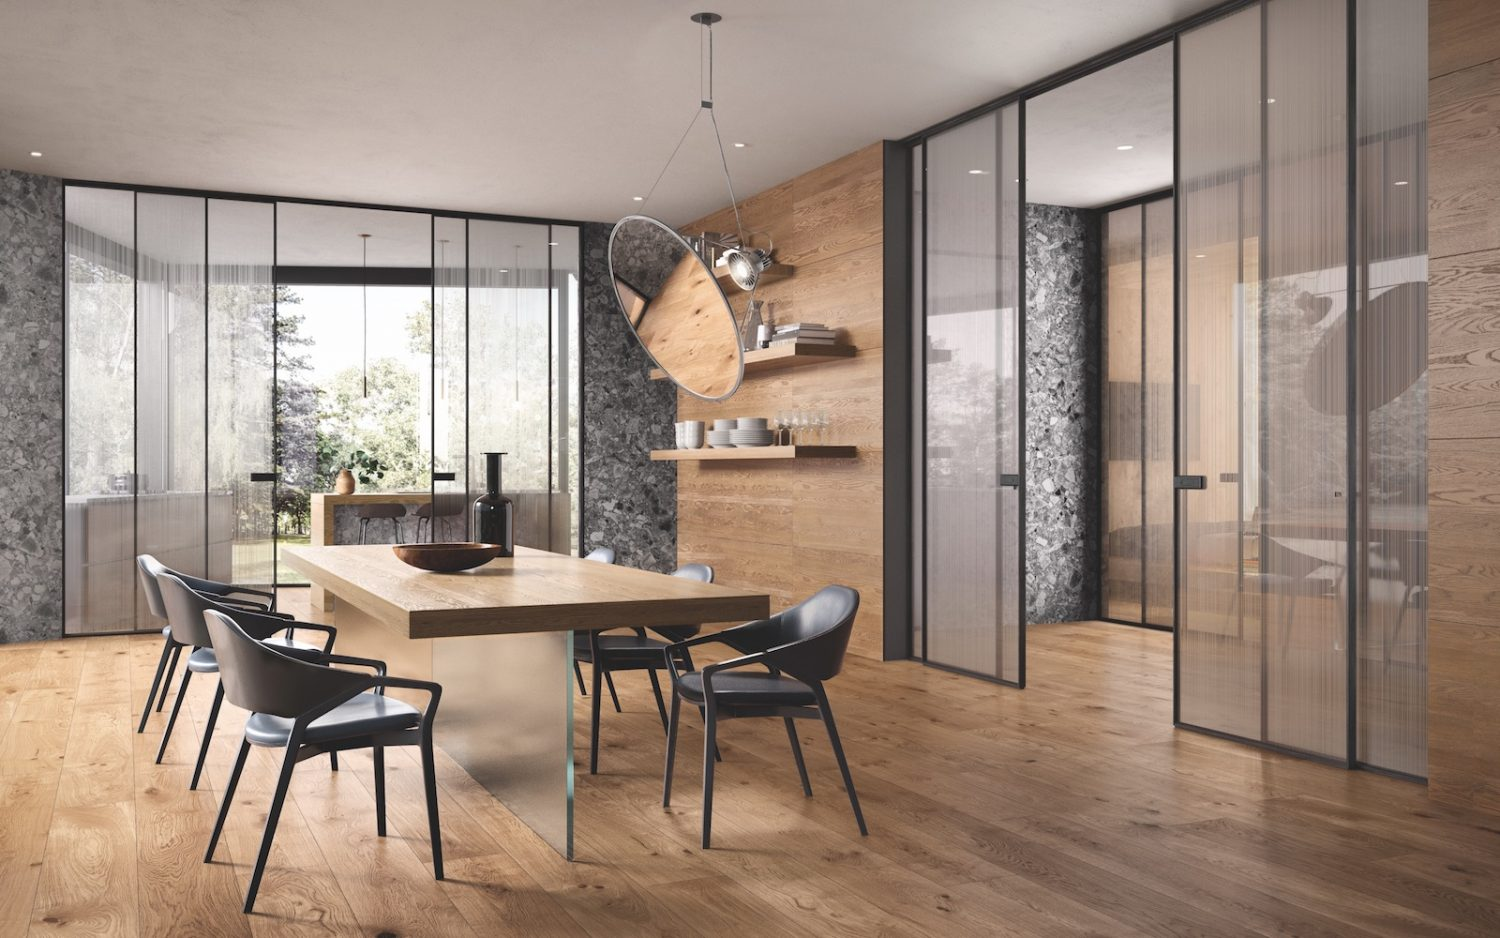 Porte Scorrevoli A Due Ante In Vetro.Italian Doors Parquet Wardrobes And Wooden Design Garofoli